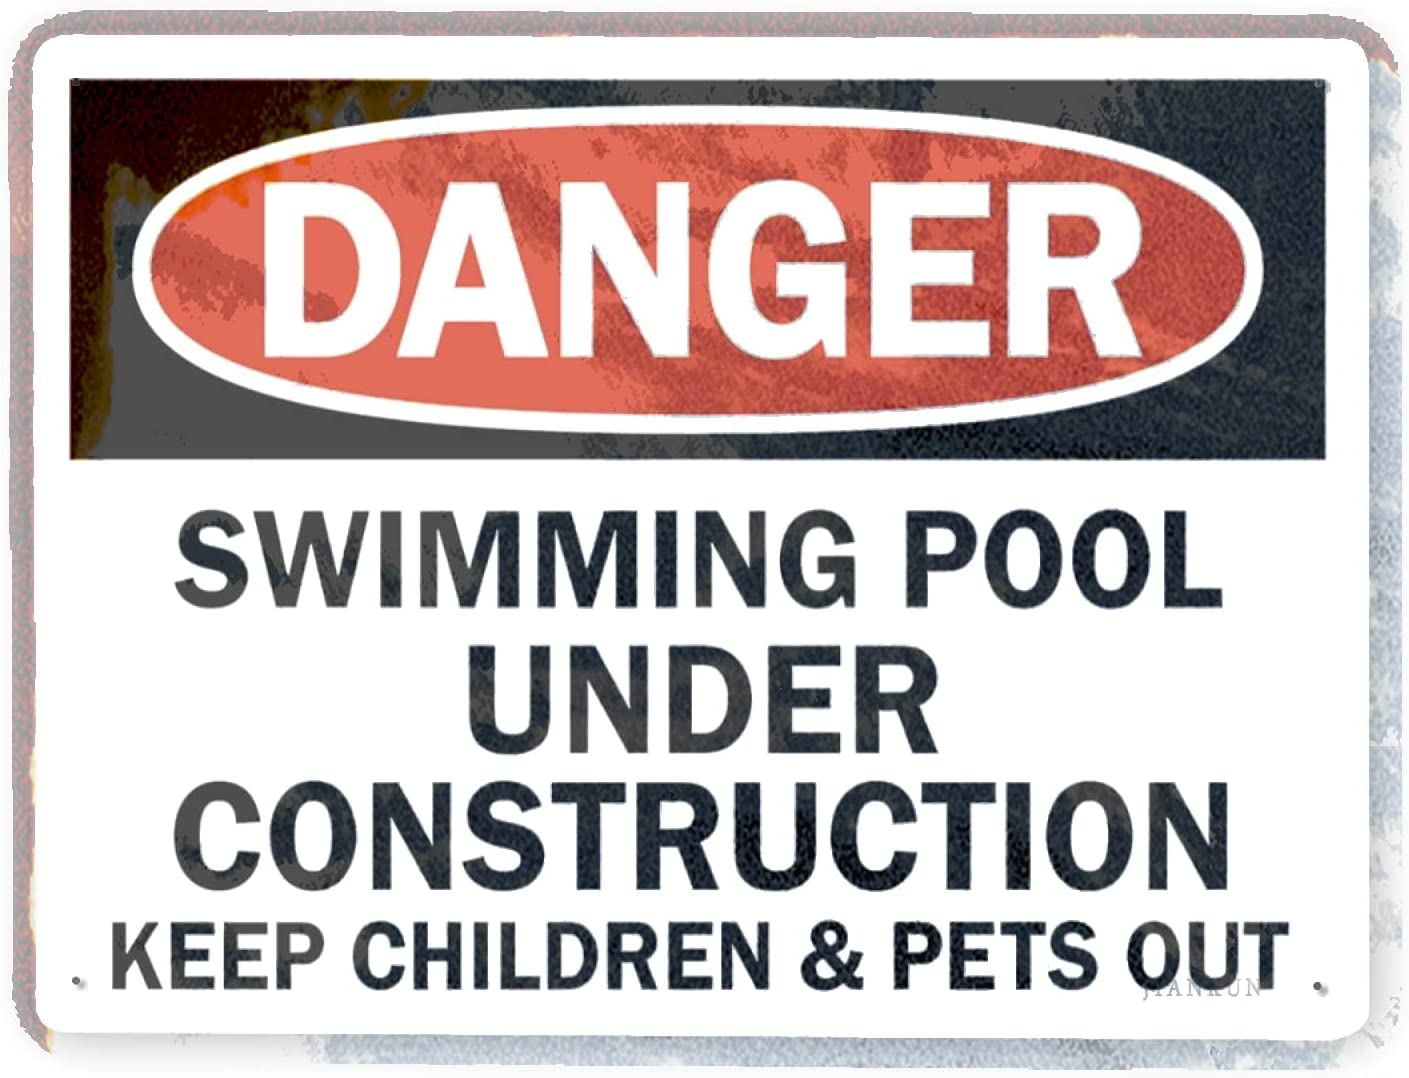 Man Cave Decor 2 Pieces Year-end annual account Ultra-Cheap Deals Warning danger Sign Swimming U Pool